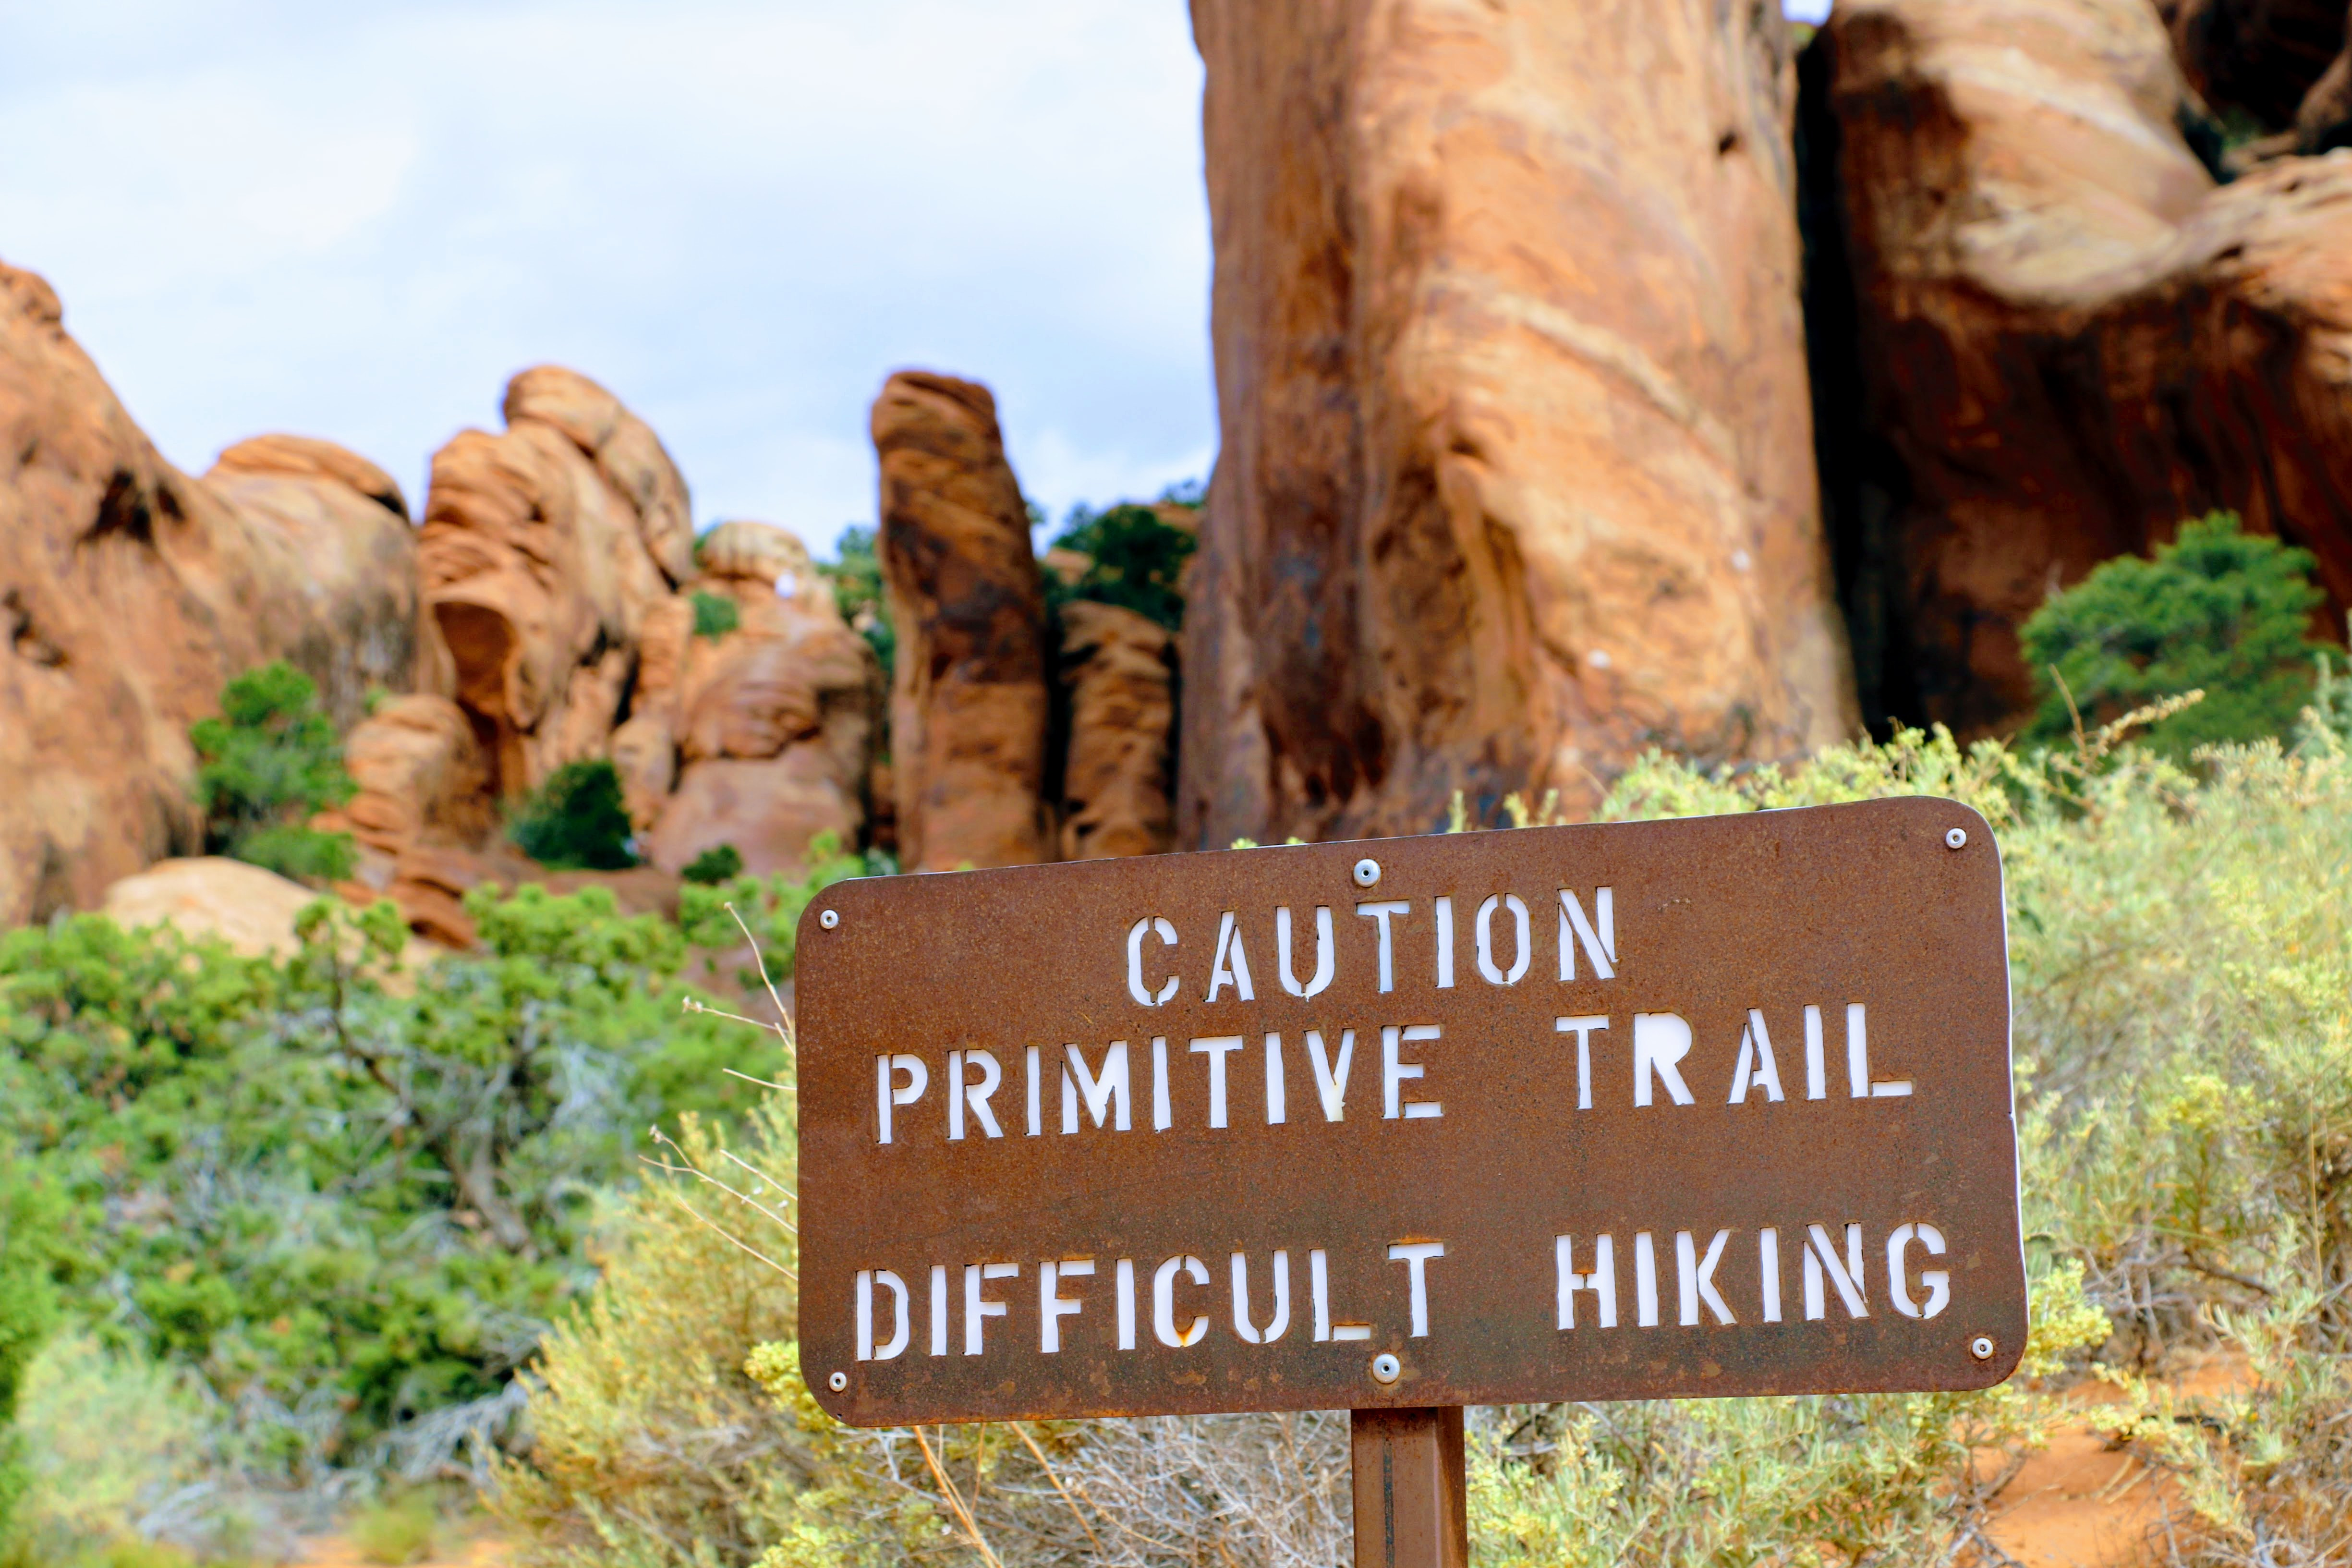 Cuation Primitive Trail Difficult Hiking sign